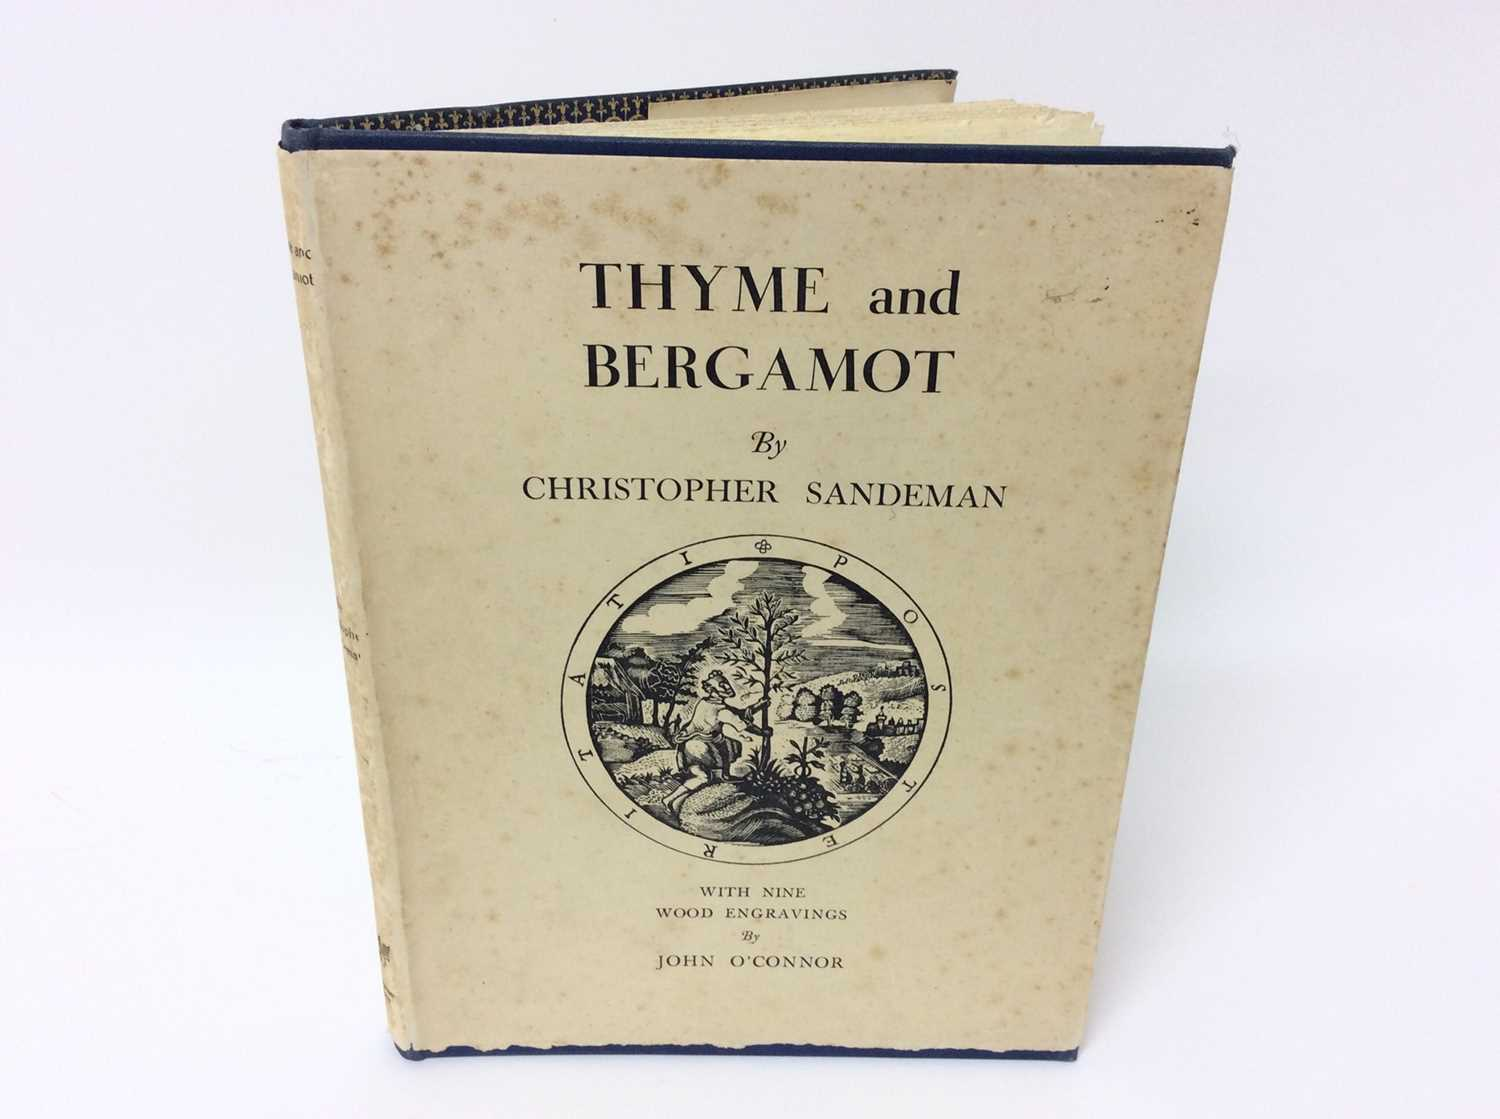 Christopher Sandeman - Thyme and Bergamot, illustrated by John O'Connor, Dropmore Press, 1947, numbe